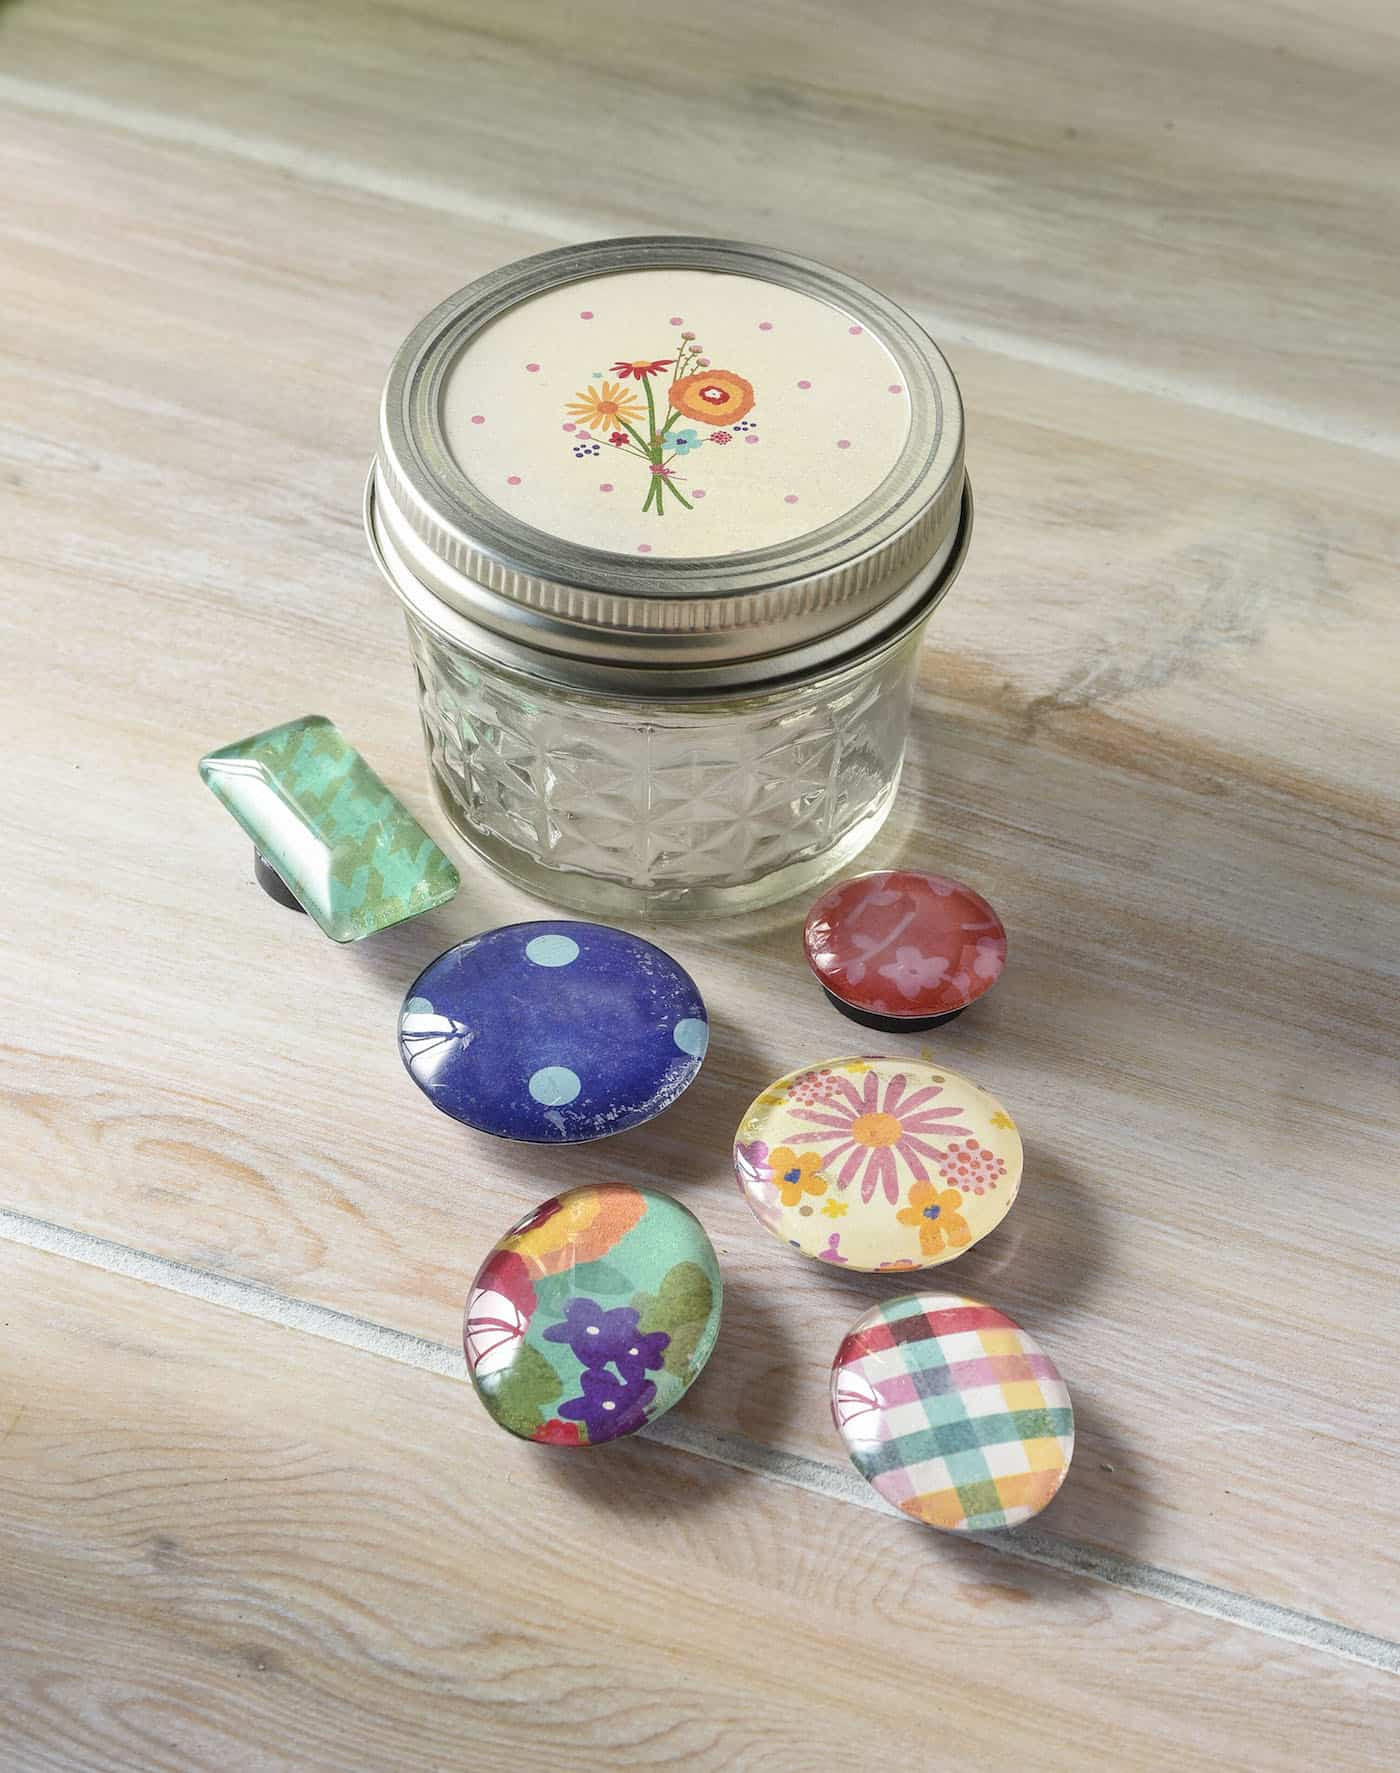 Best ideas about Mason Jar DIY Gifts . Save or Pin Quick handmade ts DIY magnets in a mason jar Mod Now.